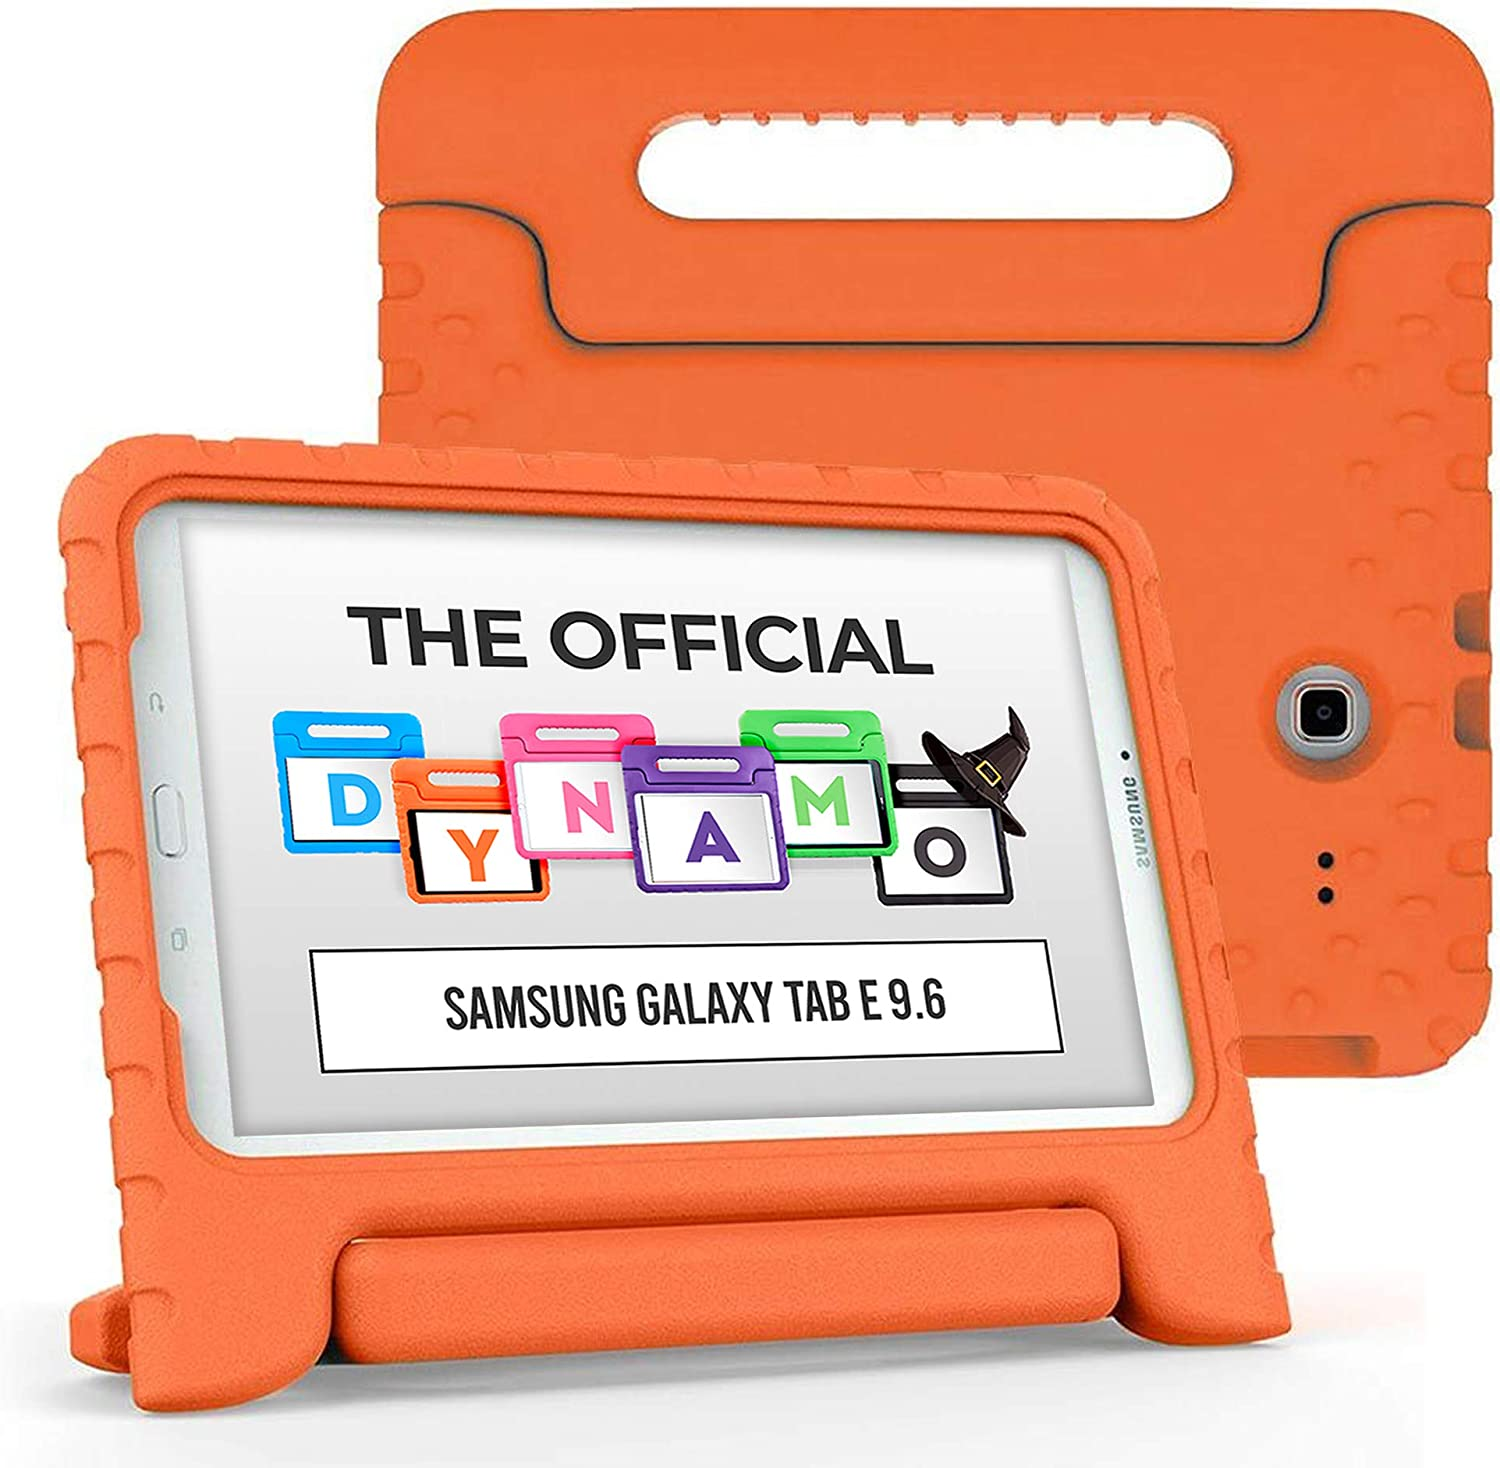 Cooper Dynamo [Rugged Kids Case] Protective Case for Samsung Tab E 9.6 | Child Proof Cover, Stand, Handle | SM-T560 T561 T562 T563 T565 T567 (Orange)